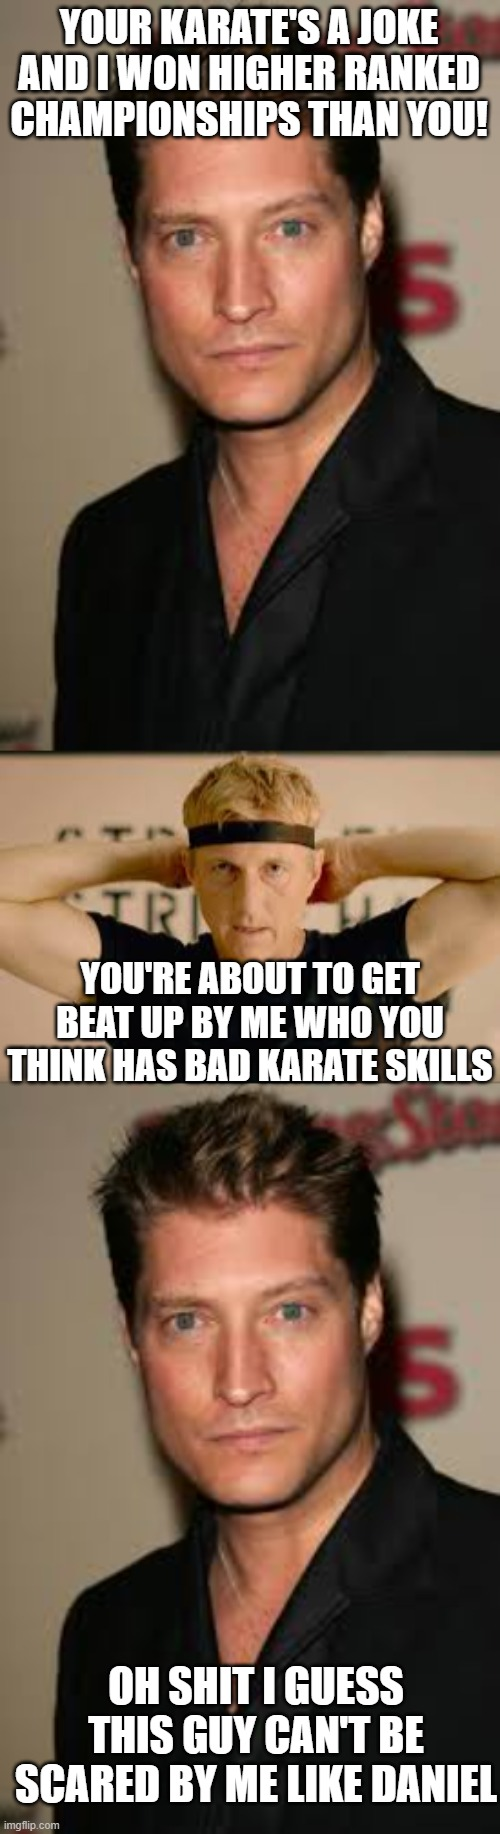 Mike Barnes meets Johnny Lawrence |  YOUR KARATE'S A JOKE AND I WON HIGHER RANKED CHAMPIONSHIPS THAN YOU! YOU'RE ABOUT TO GET BEAT UP BY ME WHO YOU THINK HAS BAD KARATE SKILLS; OH SHIT I GUESS THIS GUY CAN'T BE SCARED BY ME LIKE DANIEL | image tagged in cobra kai,karate,fight,entertainment,insult,threats | made w/ Imgflip meme maker